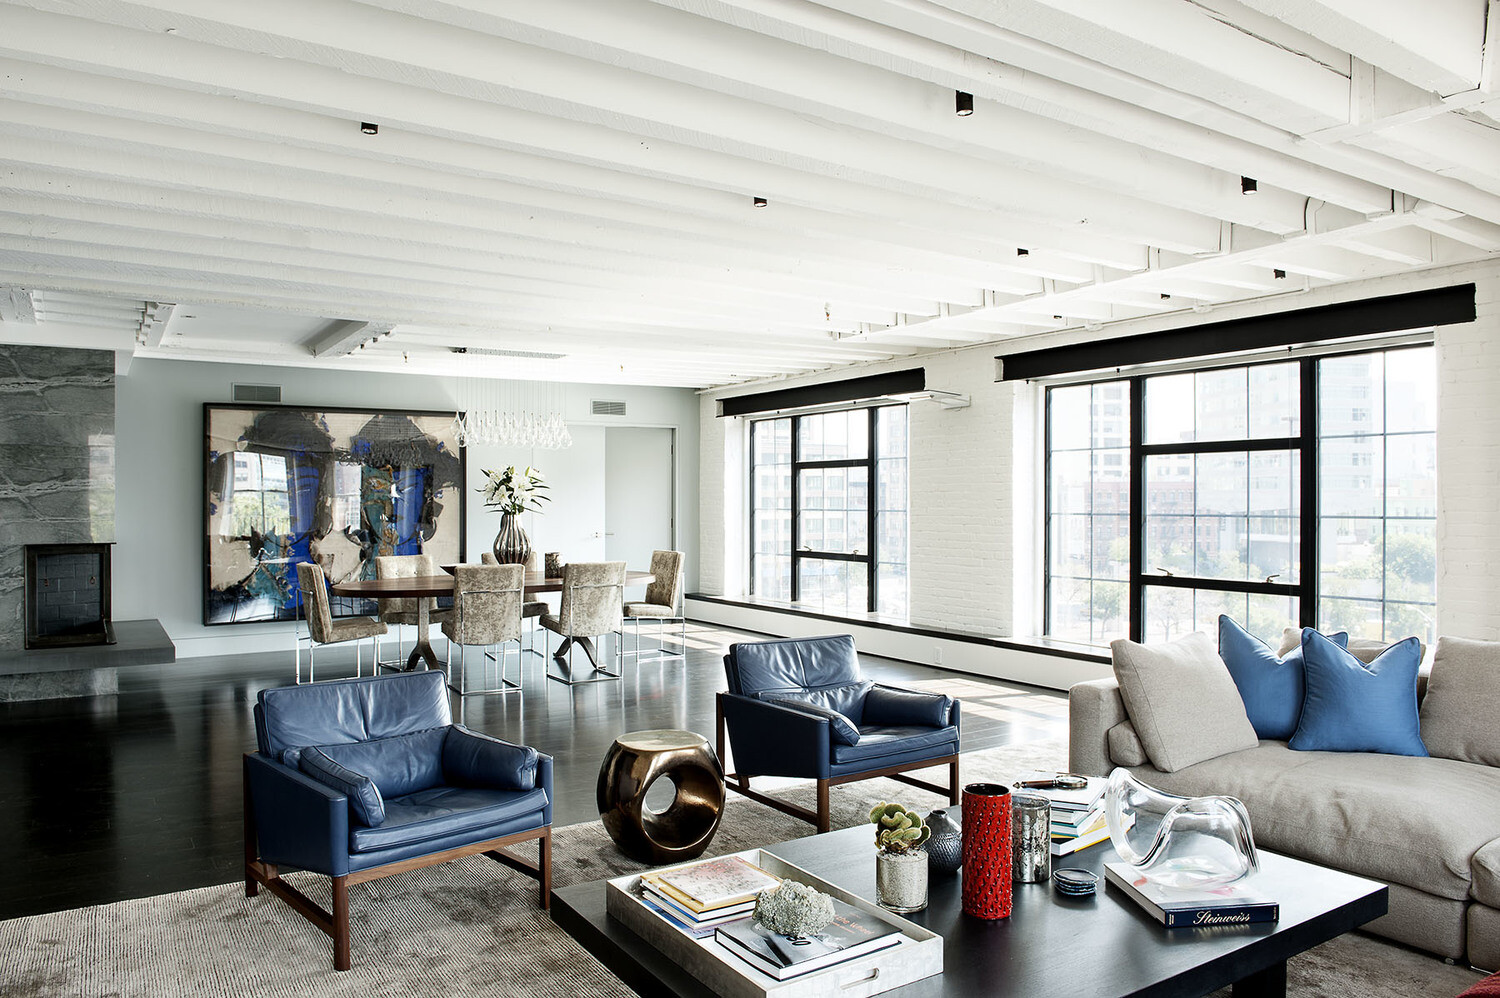 Stylish Laconic And Functional New York Loft Style: Laight Street Loft In New York By DHD Architecture